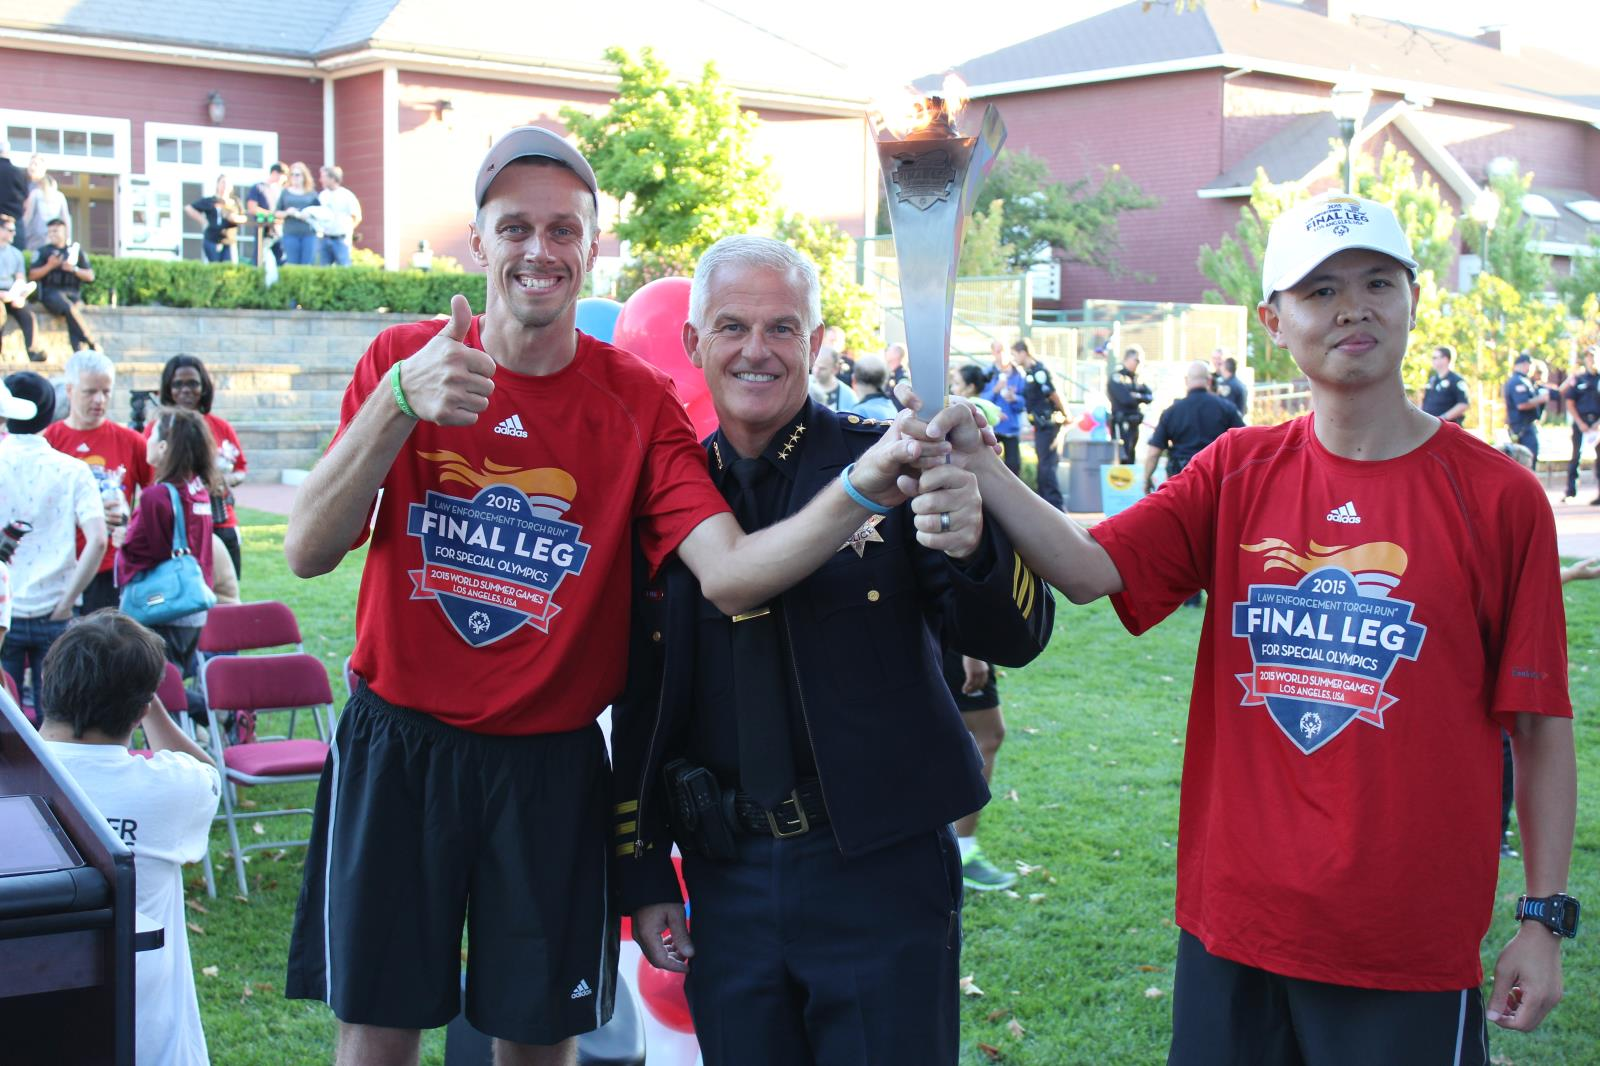 Novato Chief of Police, Jim Berg, with the Flame of Hope